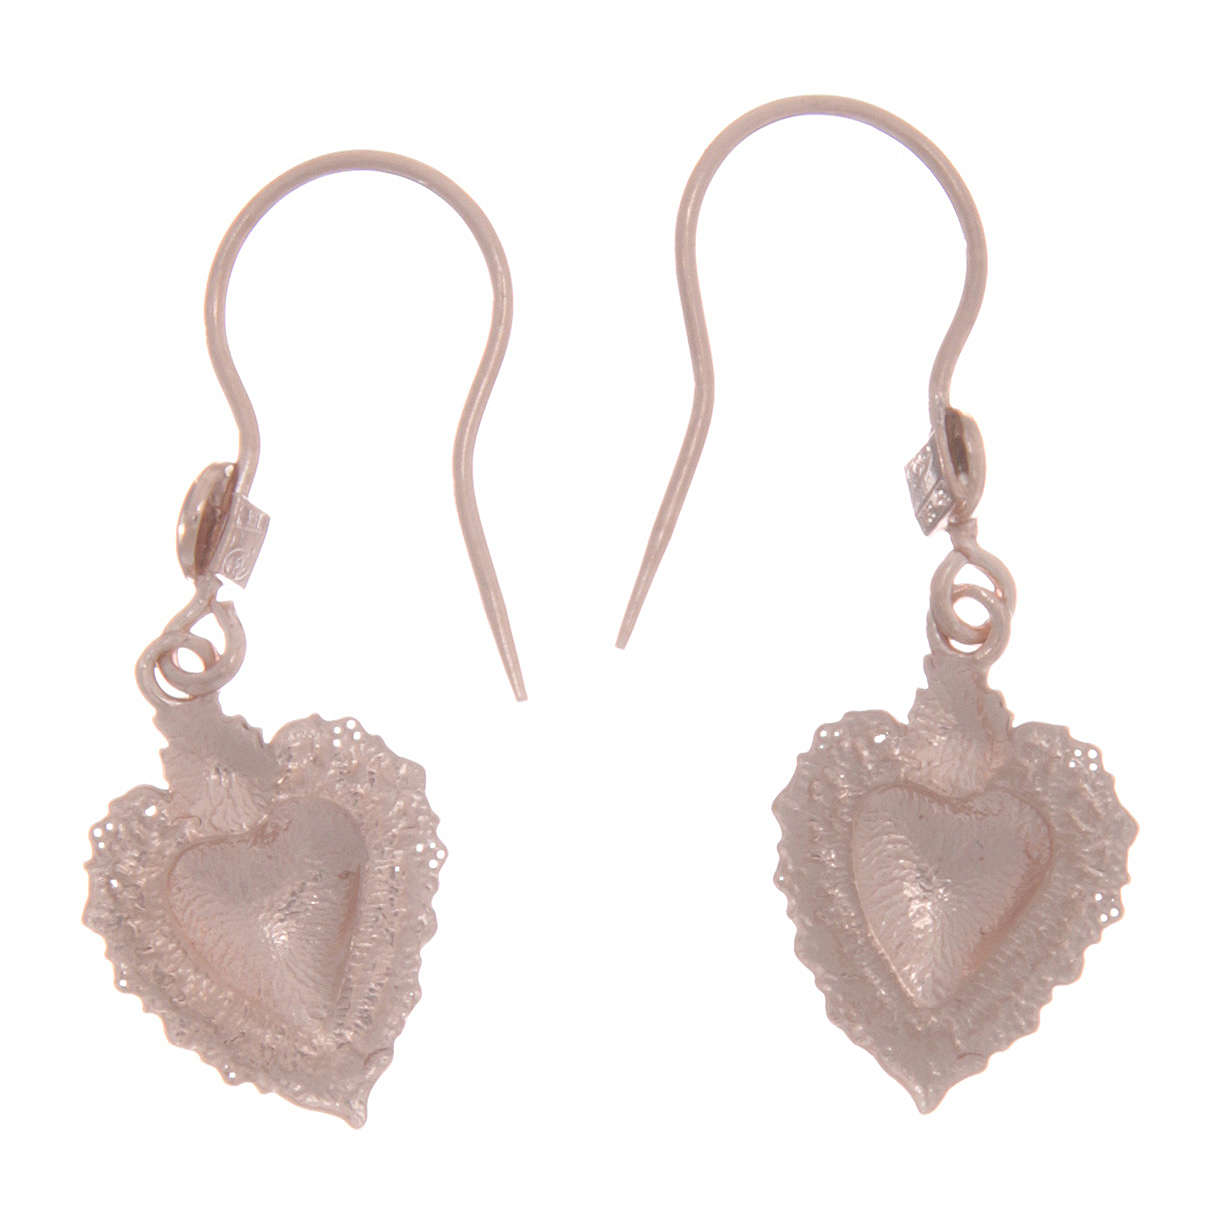 925 sterling silver earrings with rosè votive drilled heart 1,5 cm 4